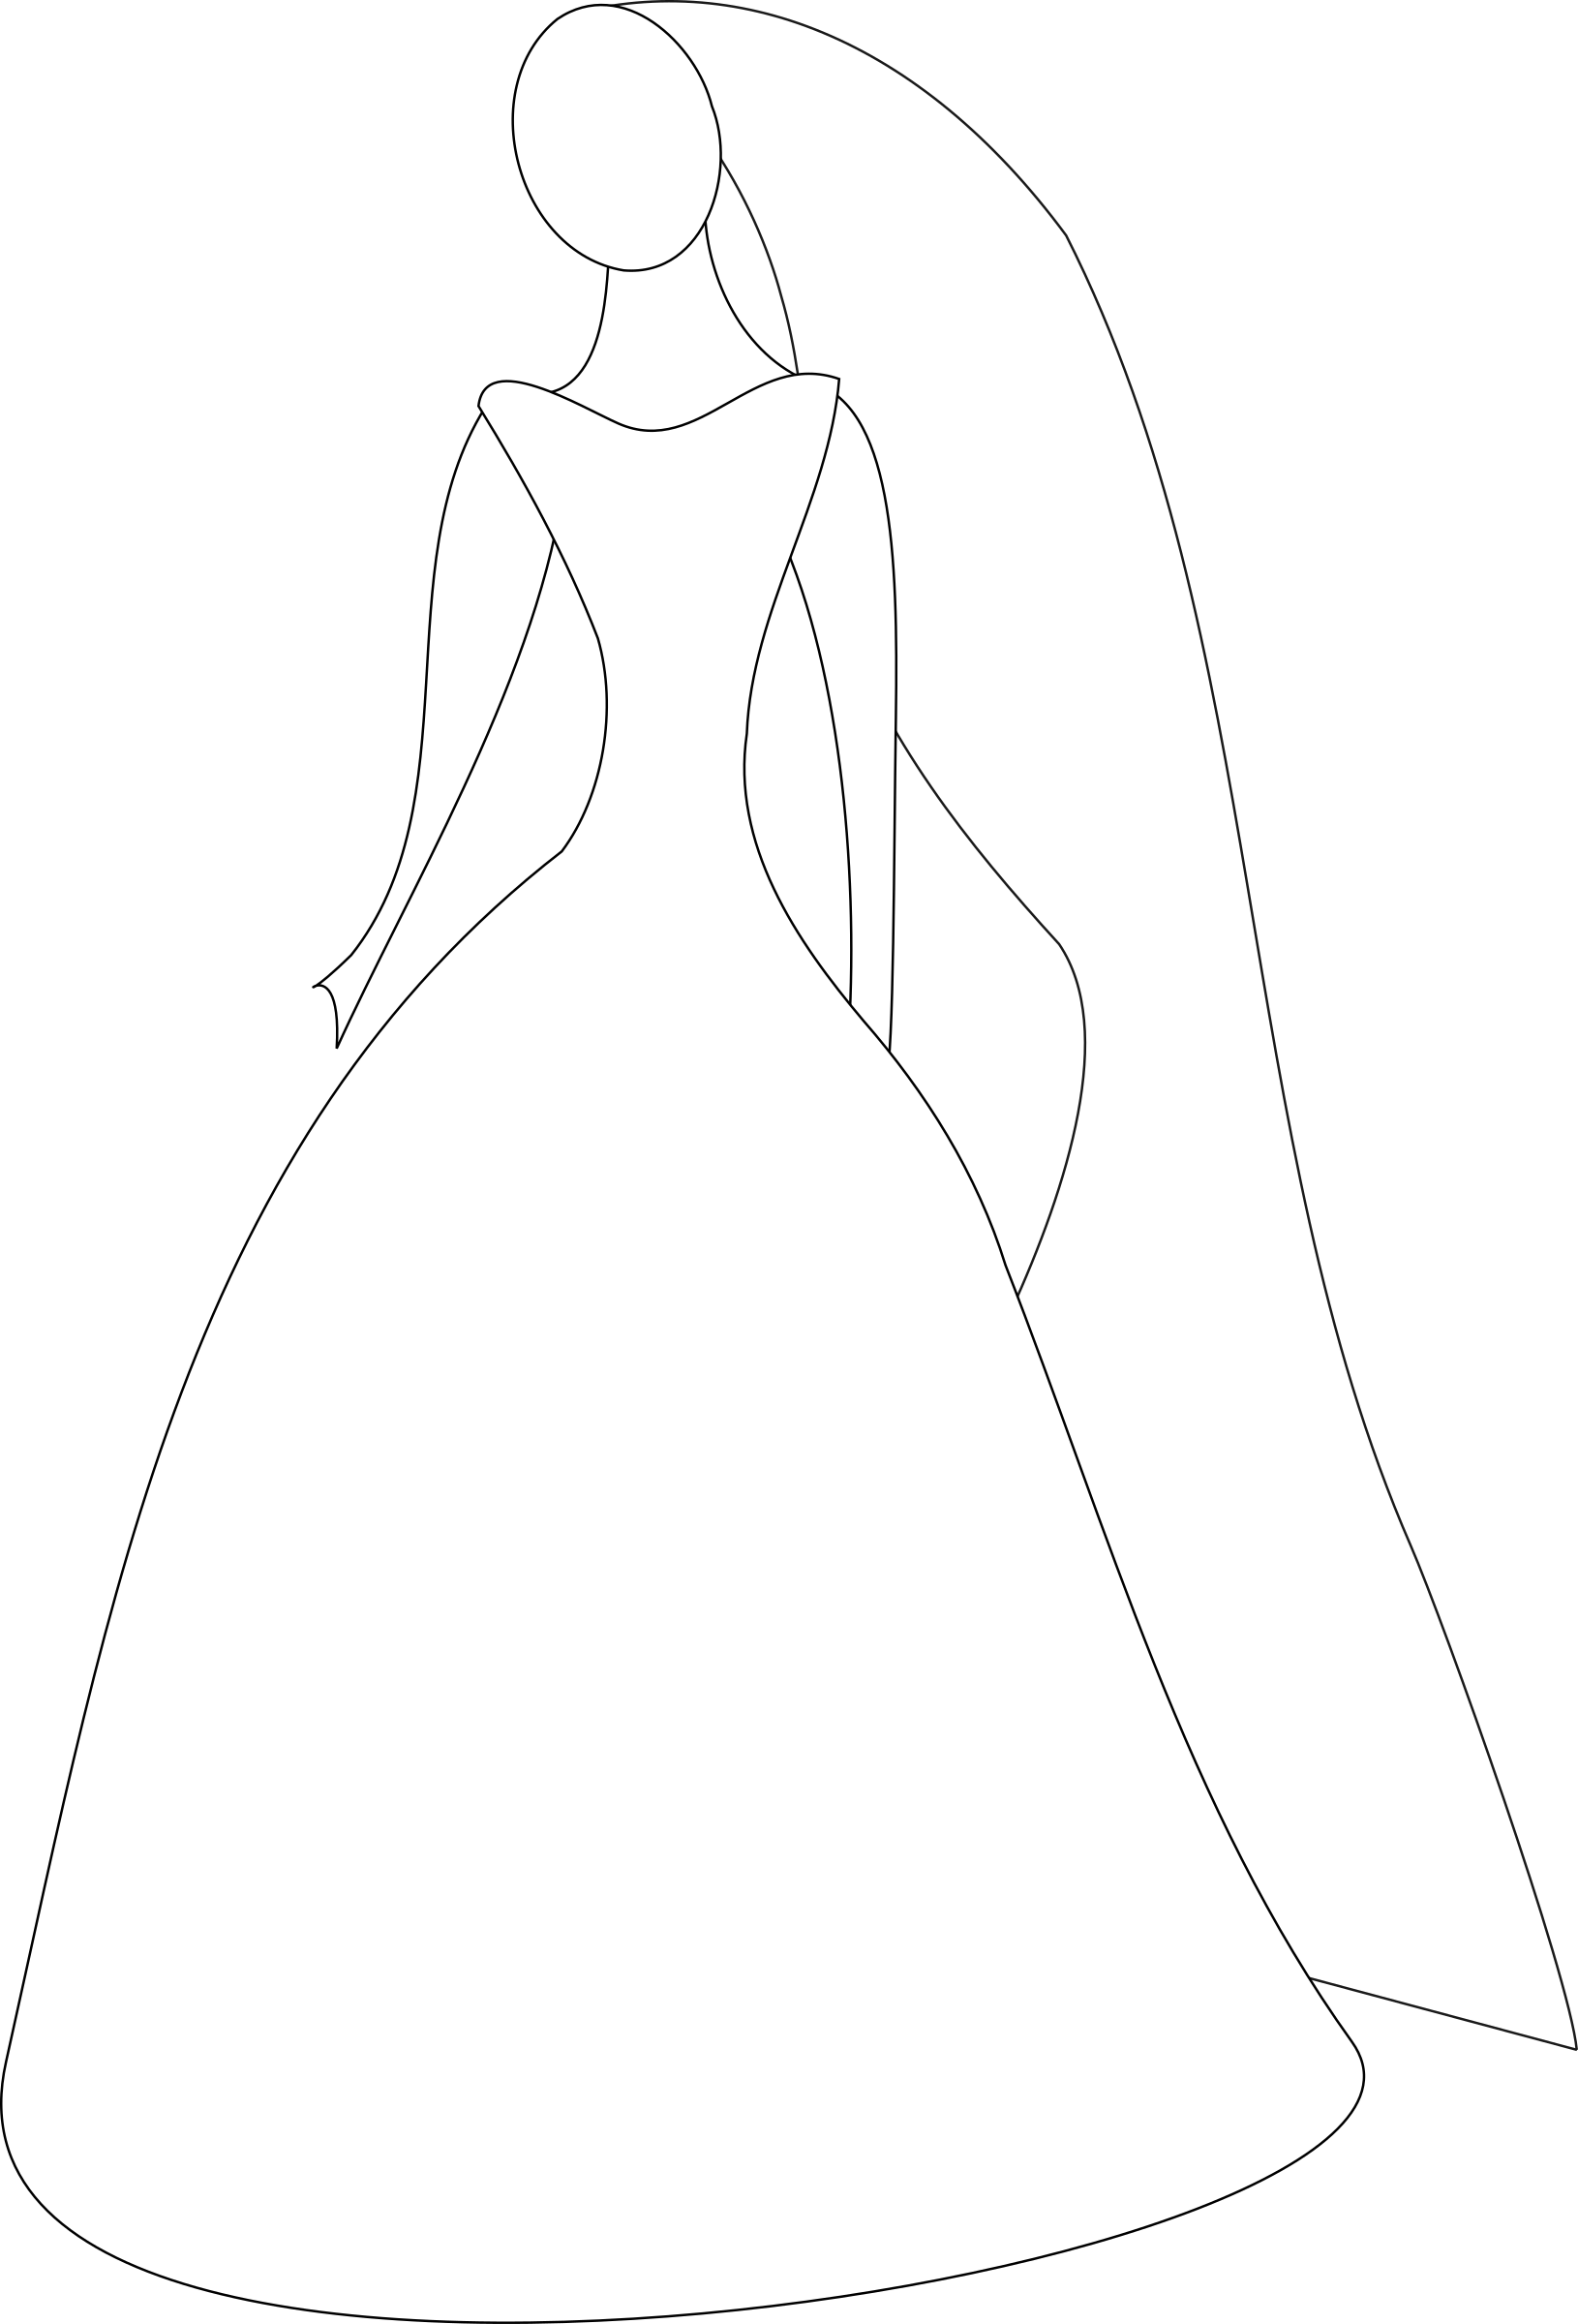 Wedding dresses silhouette at getdrawings free for personal 1630x2400 best ideas of wedding dress silhouettes for your wedding dress junglespirit Choice Image